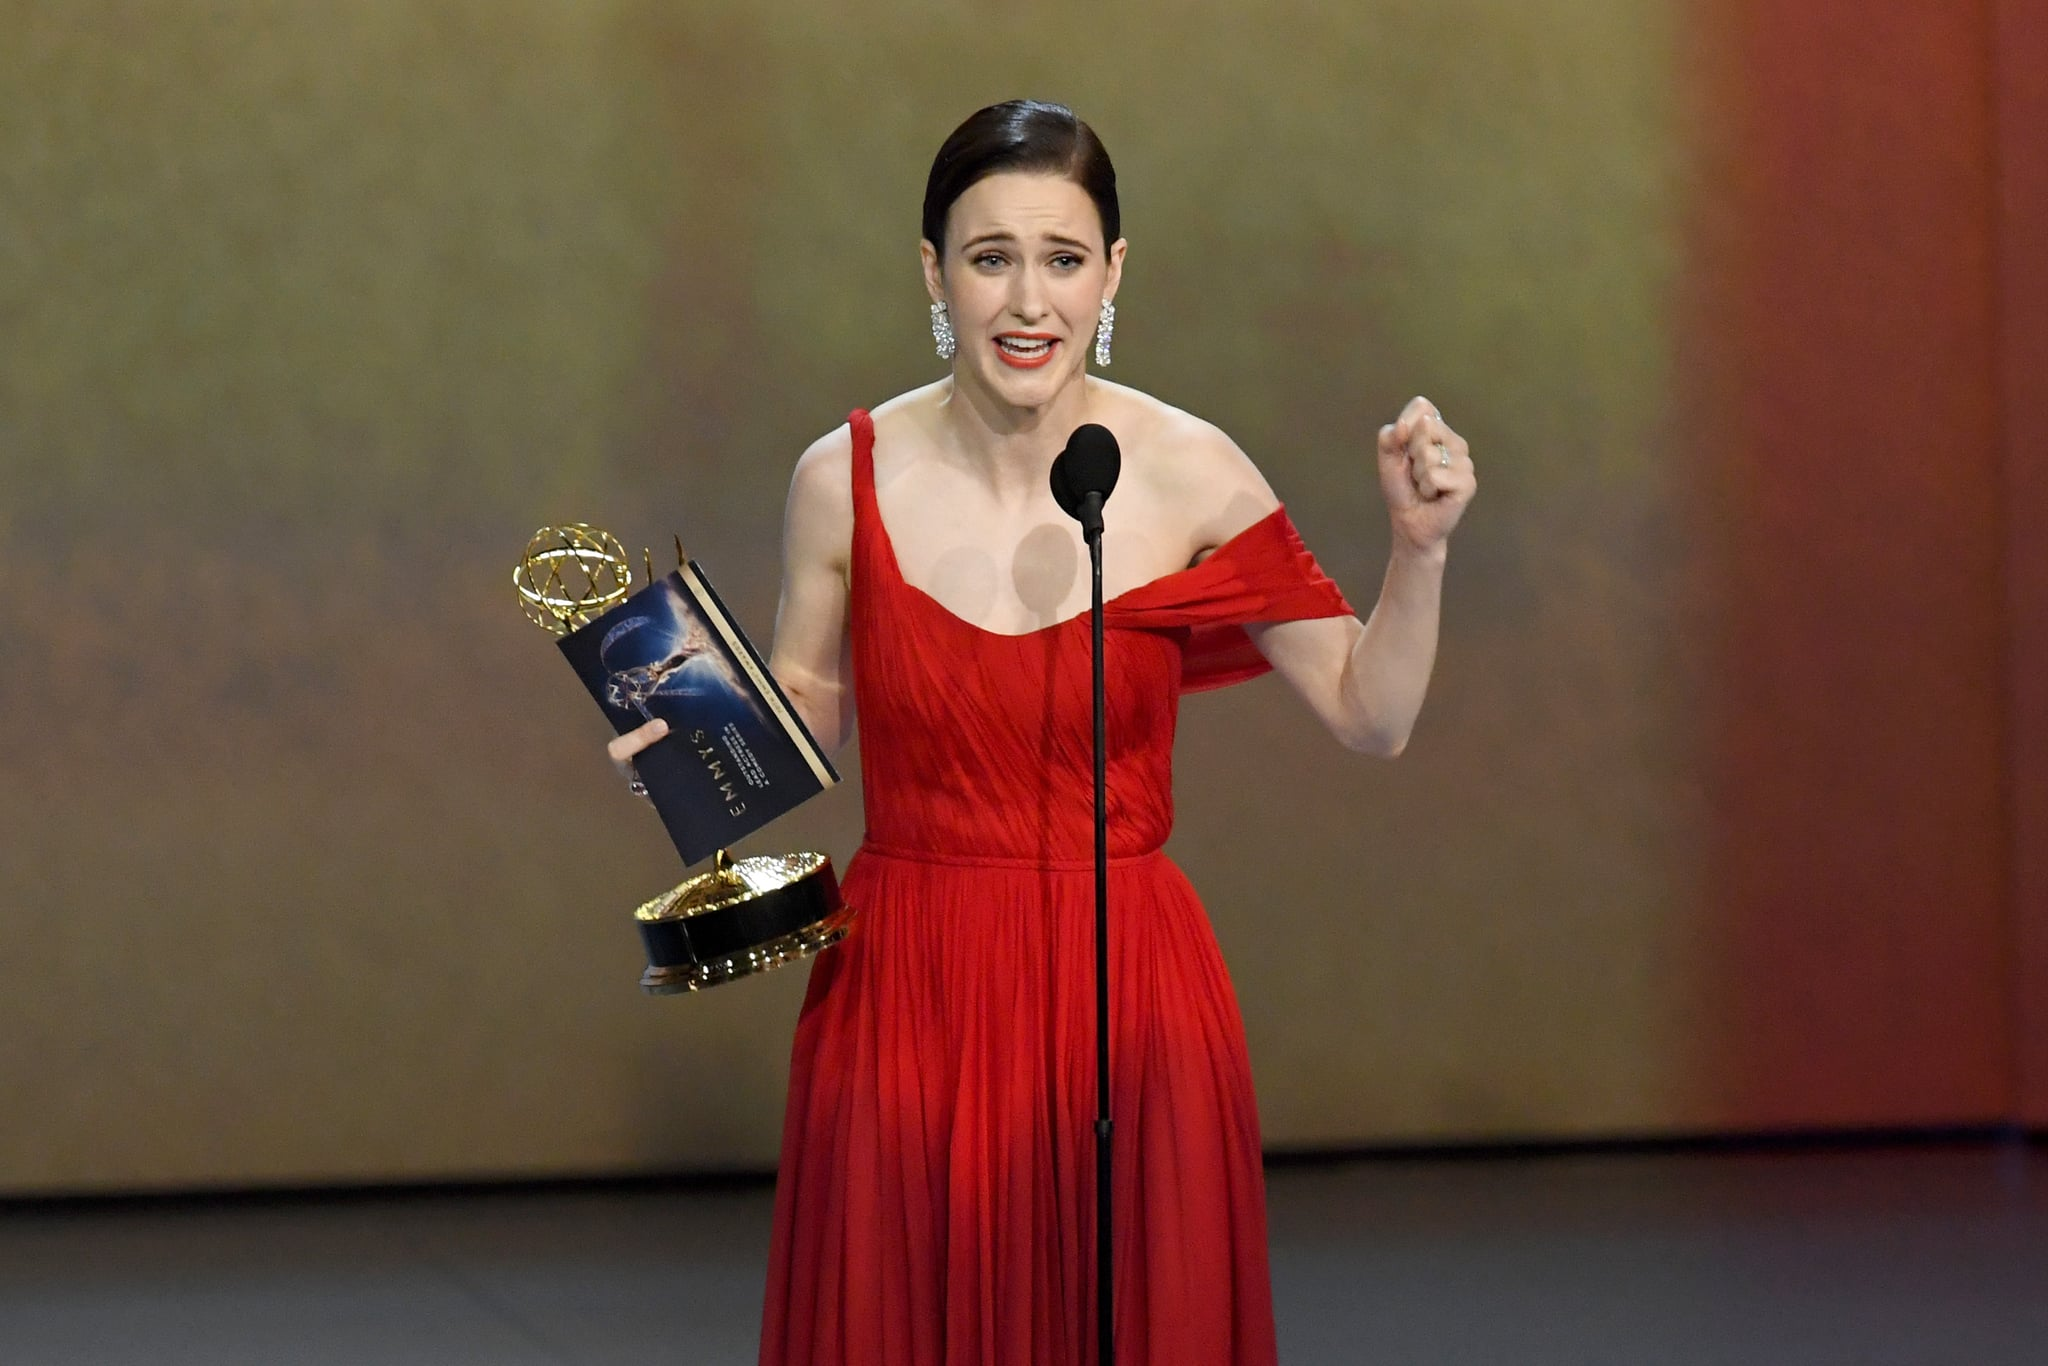 LOS ANGELES, CA - SEPTEMBER 17:  Rachel Brosnahan accepts the Outstanding Lead Actress in a Comedy Series award for 'The Marvelous Mrs. Maisel' onstage during the 70th Emmy Awards at Microsoft Theater on September 17, 2018 in Los Angeles, California.  (Photo by Kevin Winter/Getty Images)